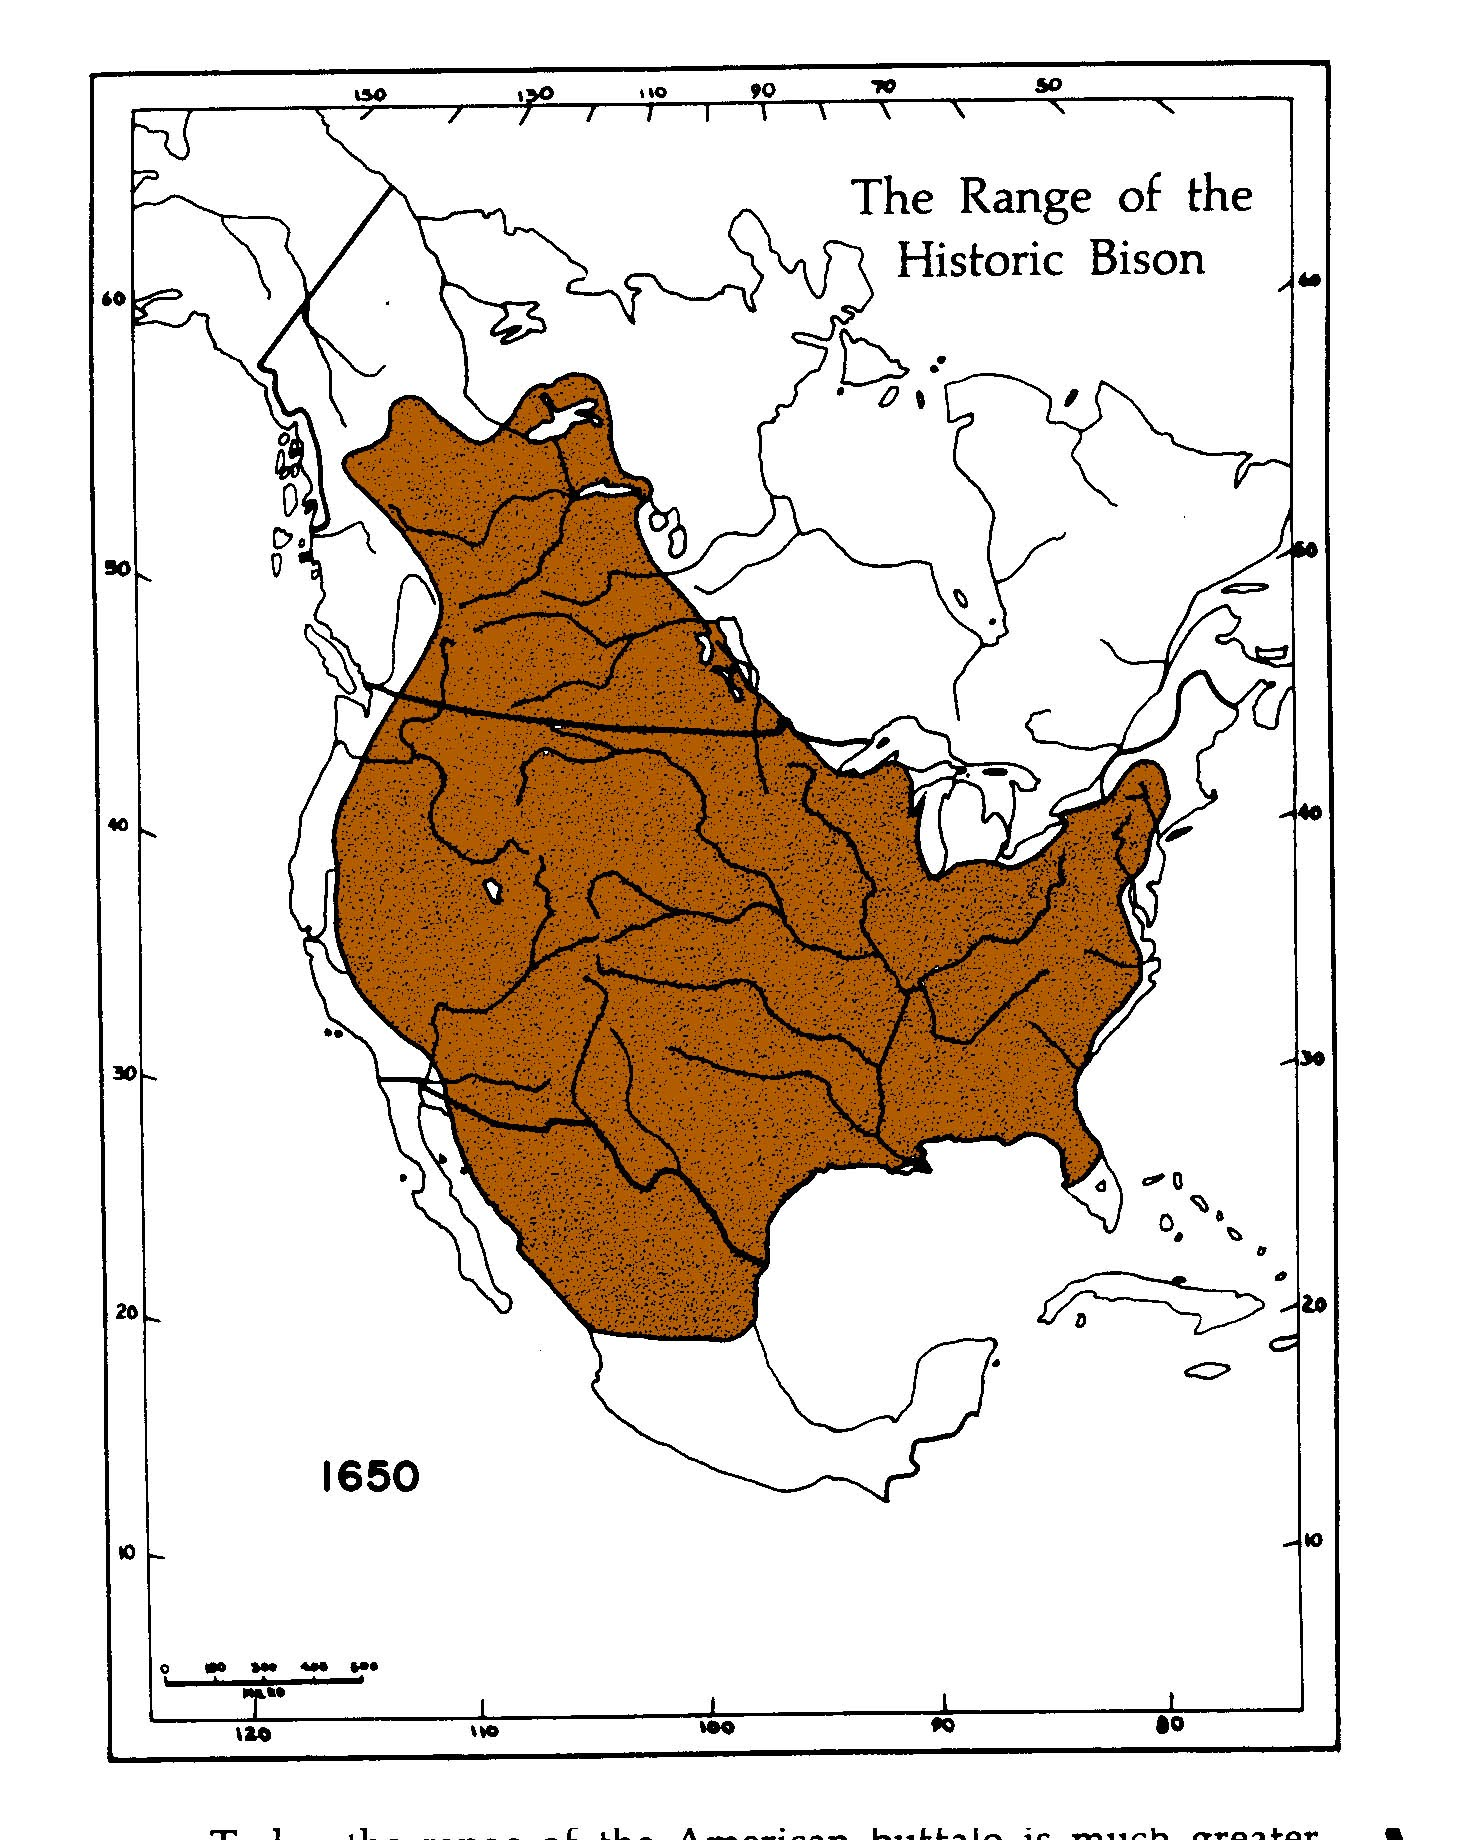 Bison range in 1650